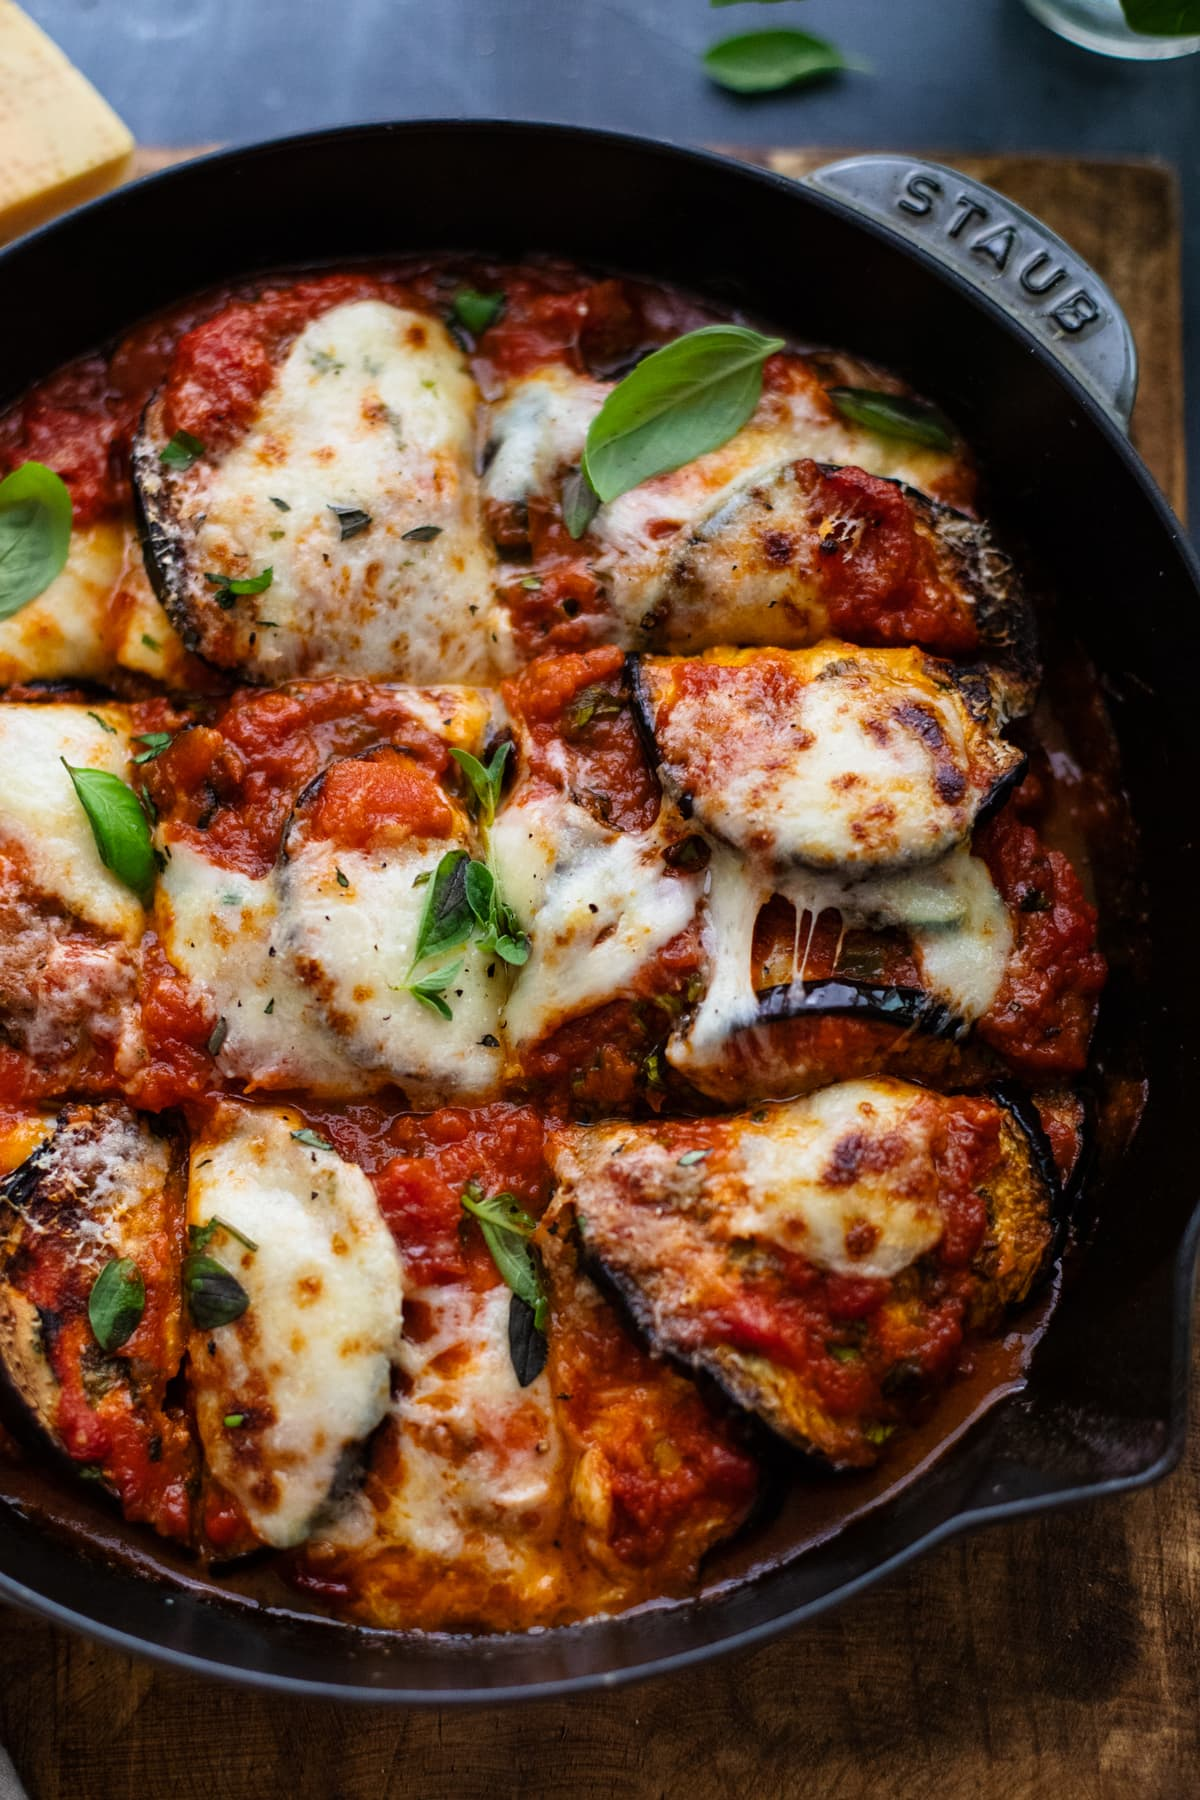 eggplant and zucchini lasagna in cast iron skillet on wooden board.